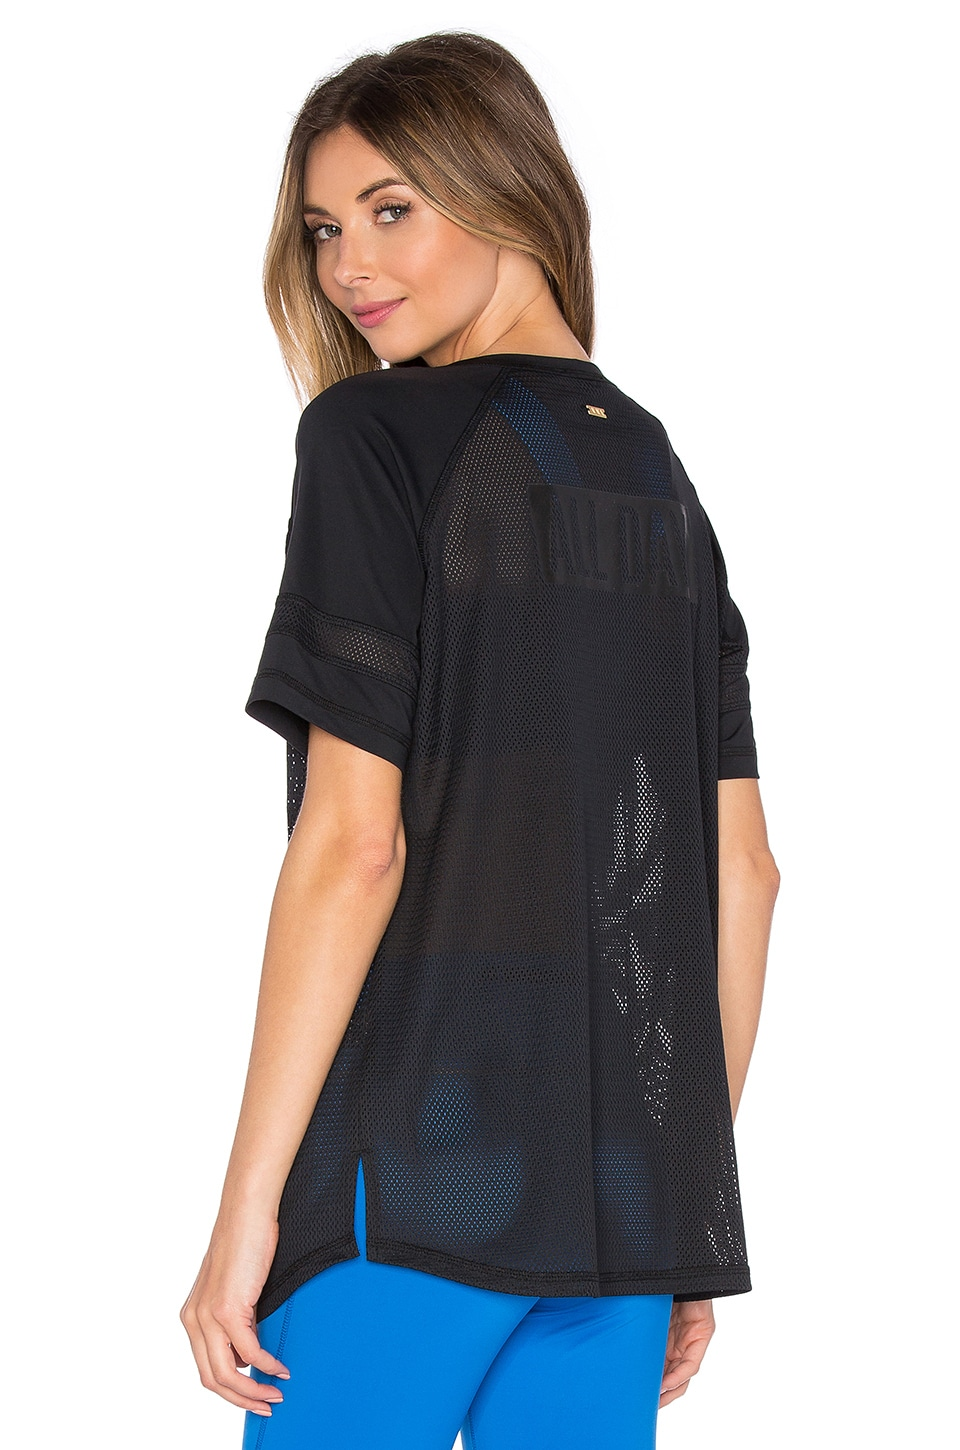 All Day Mesh Jersey by Alala